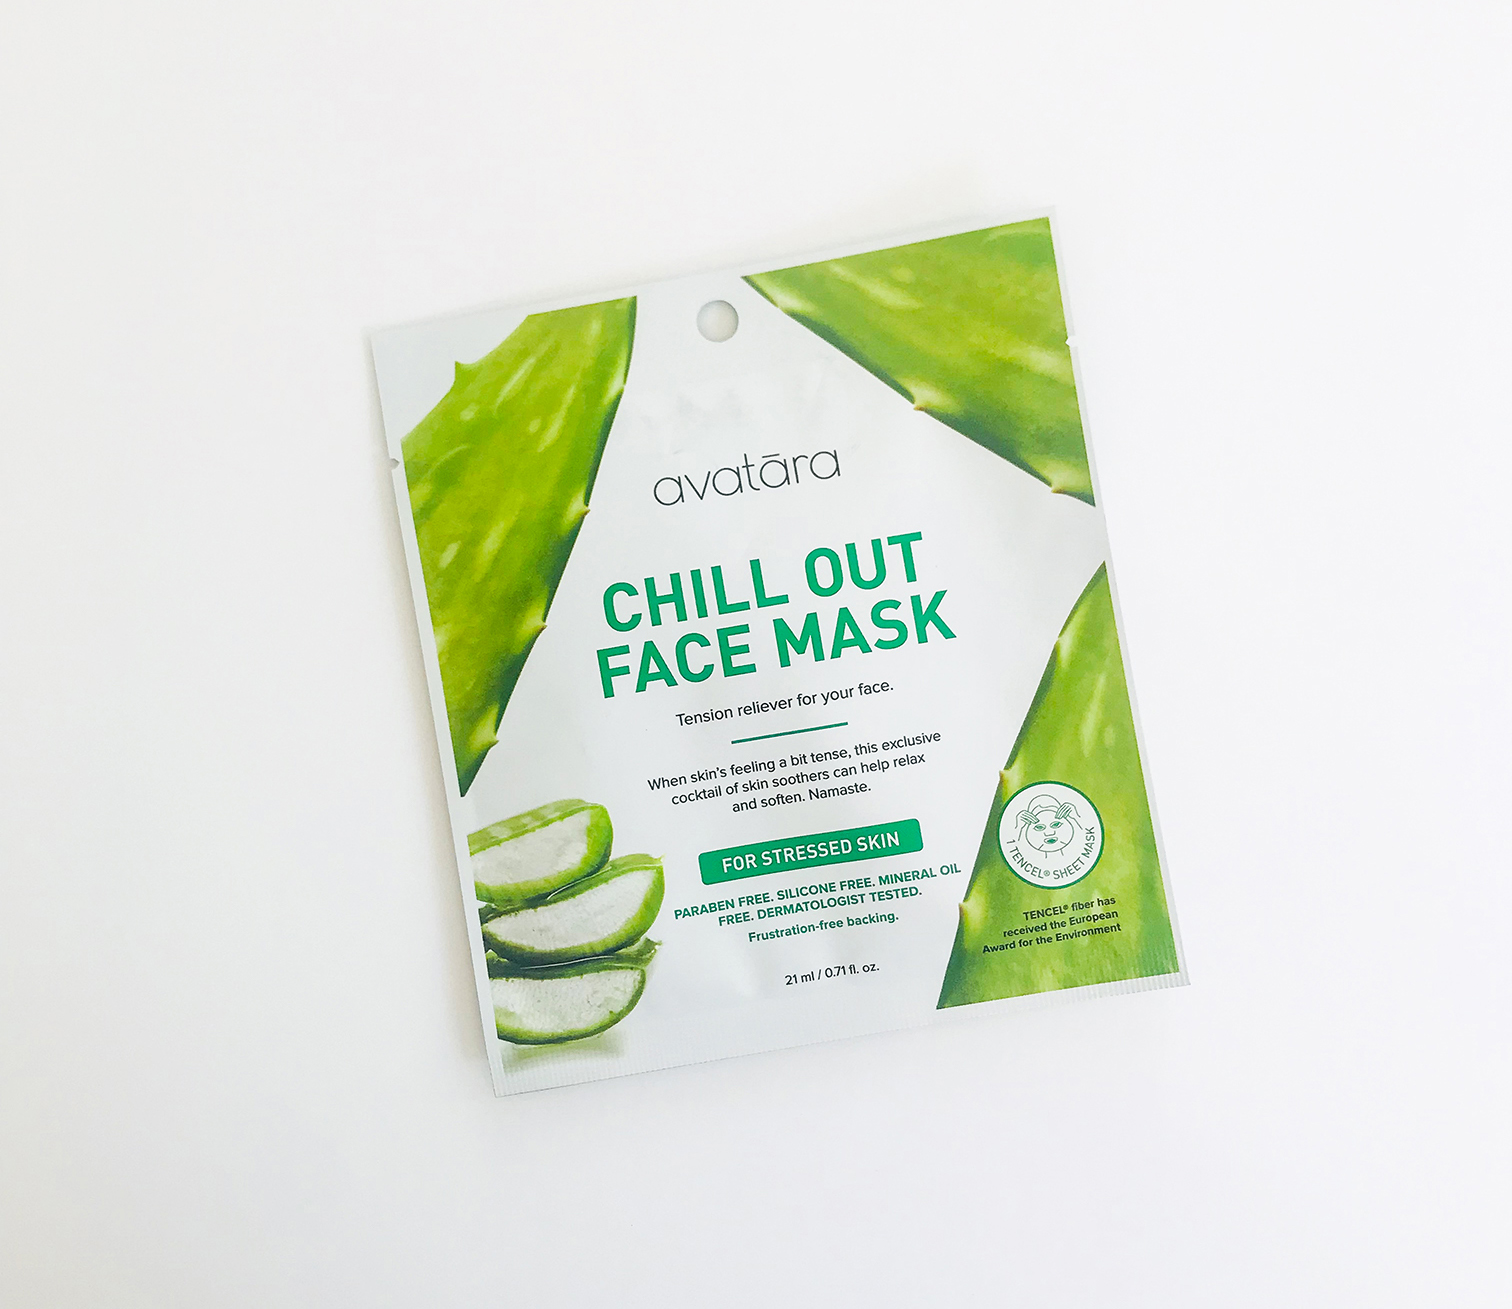 Chill Out Face Mask - FOR STRESSED SKINTension reliever for your face.When skin's feeling a bit tense, this exclusive cocktail of skin soothers can help relax and soften. Namaste.PARABEN FREE, SILICONE FREE, MINERAL OIL FREE, DERMATOLOGIST TESTED.R70 - AV003